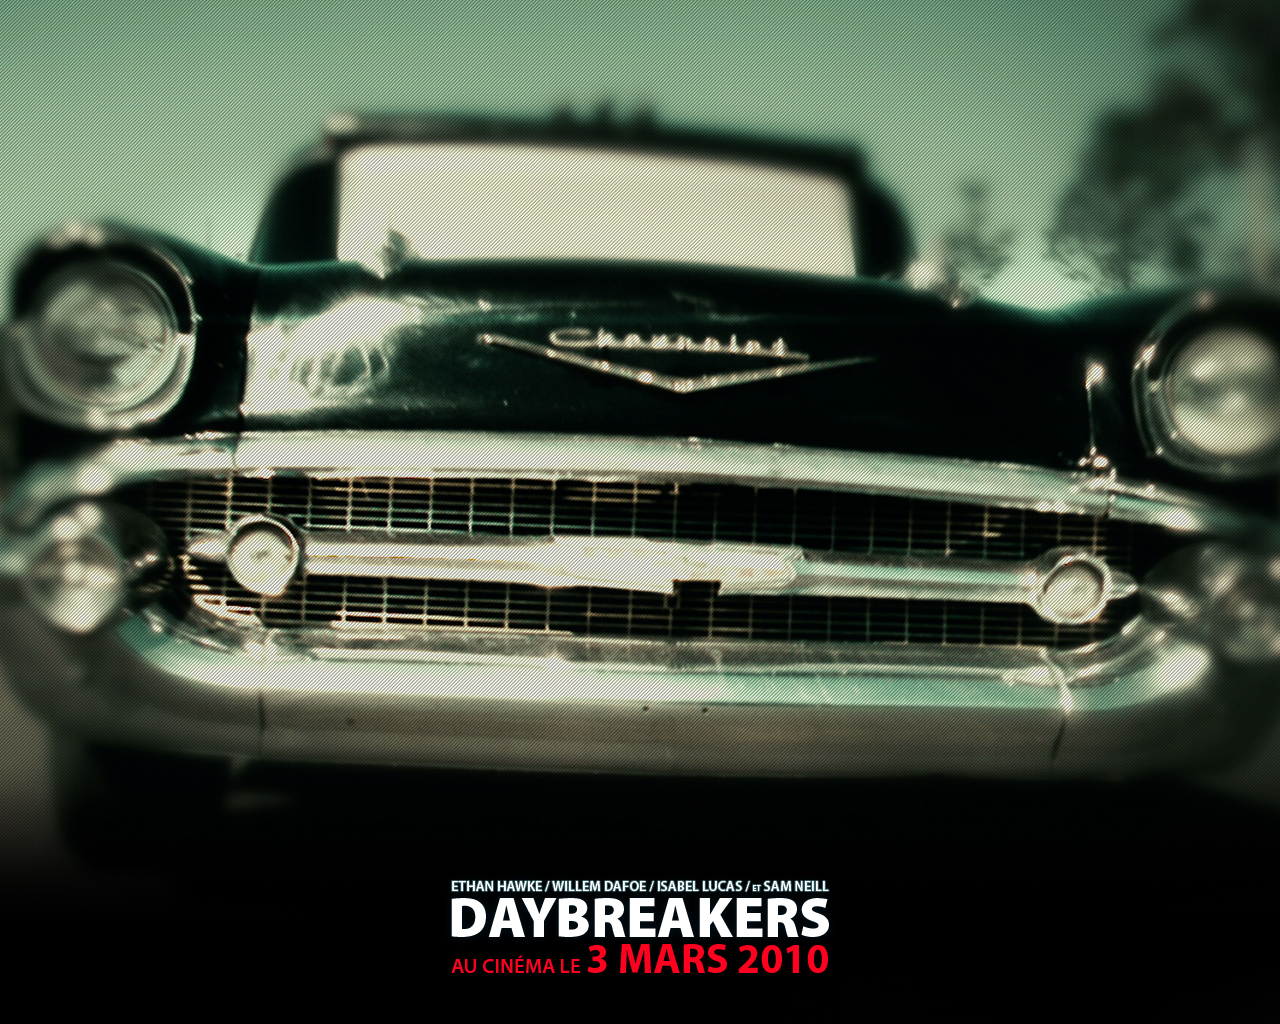 Daybreakers_03_1280x1024.jpg